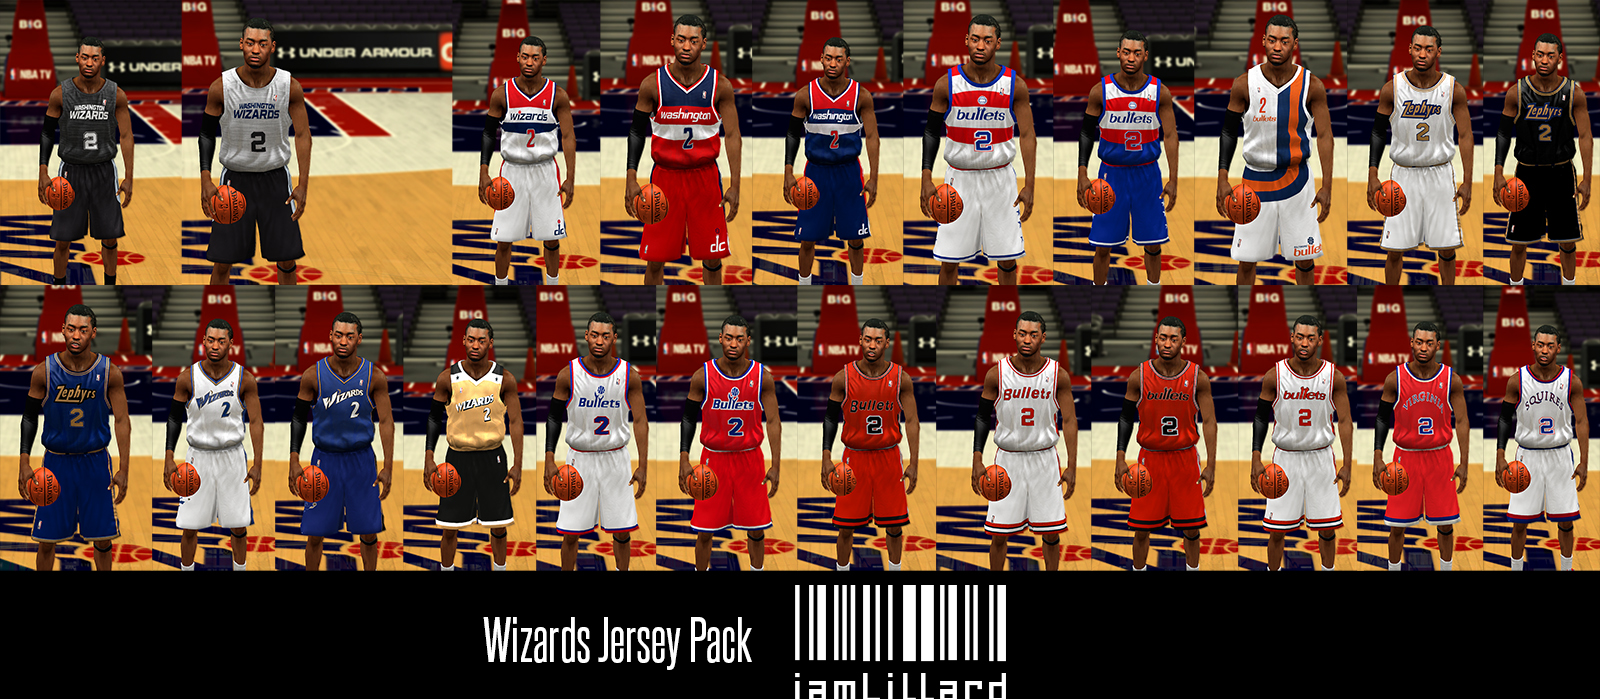 UJP Washington Wizards Jersey